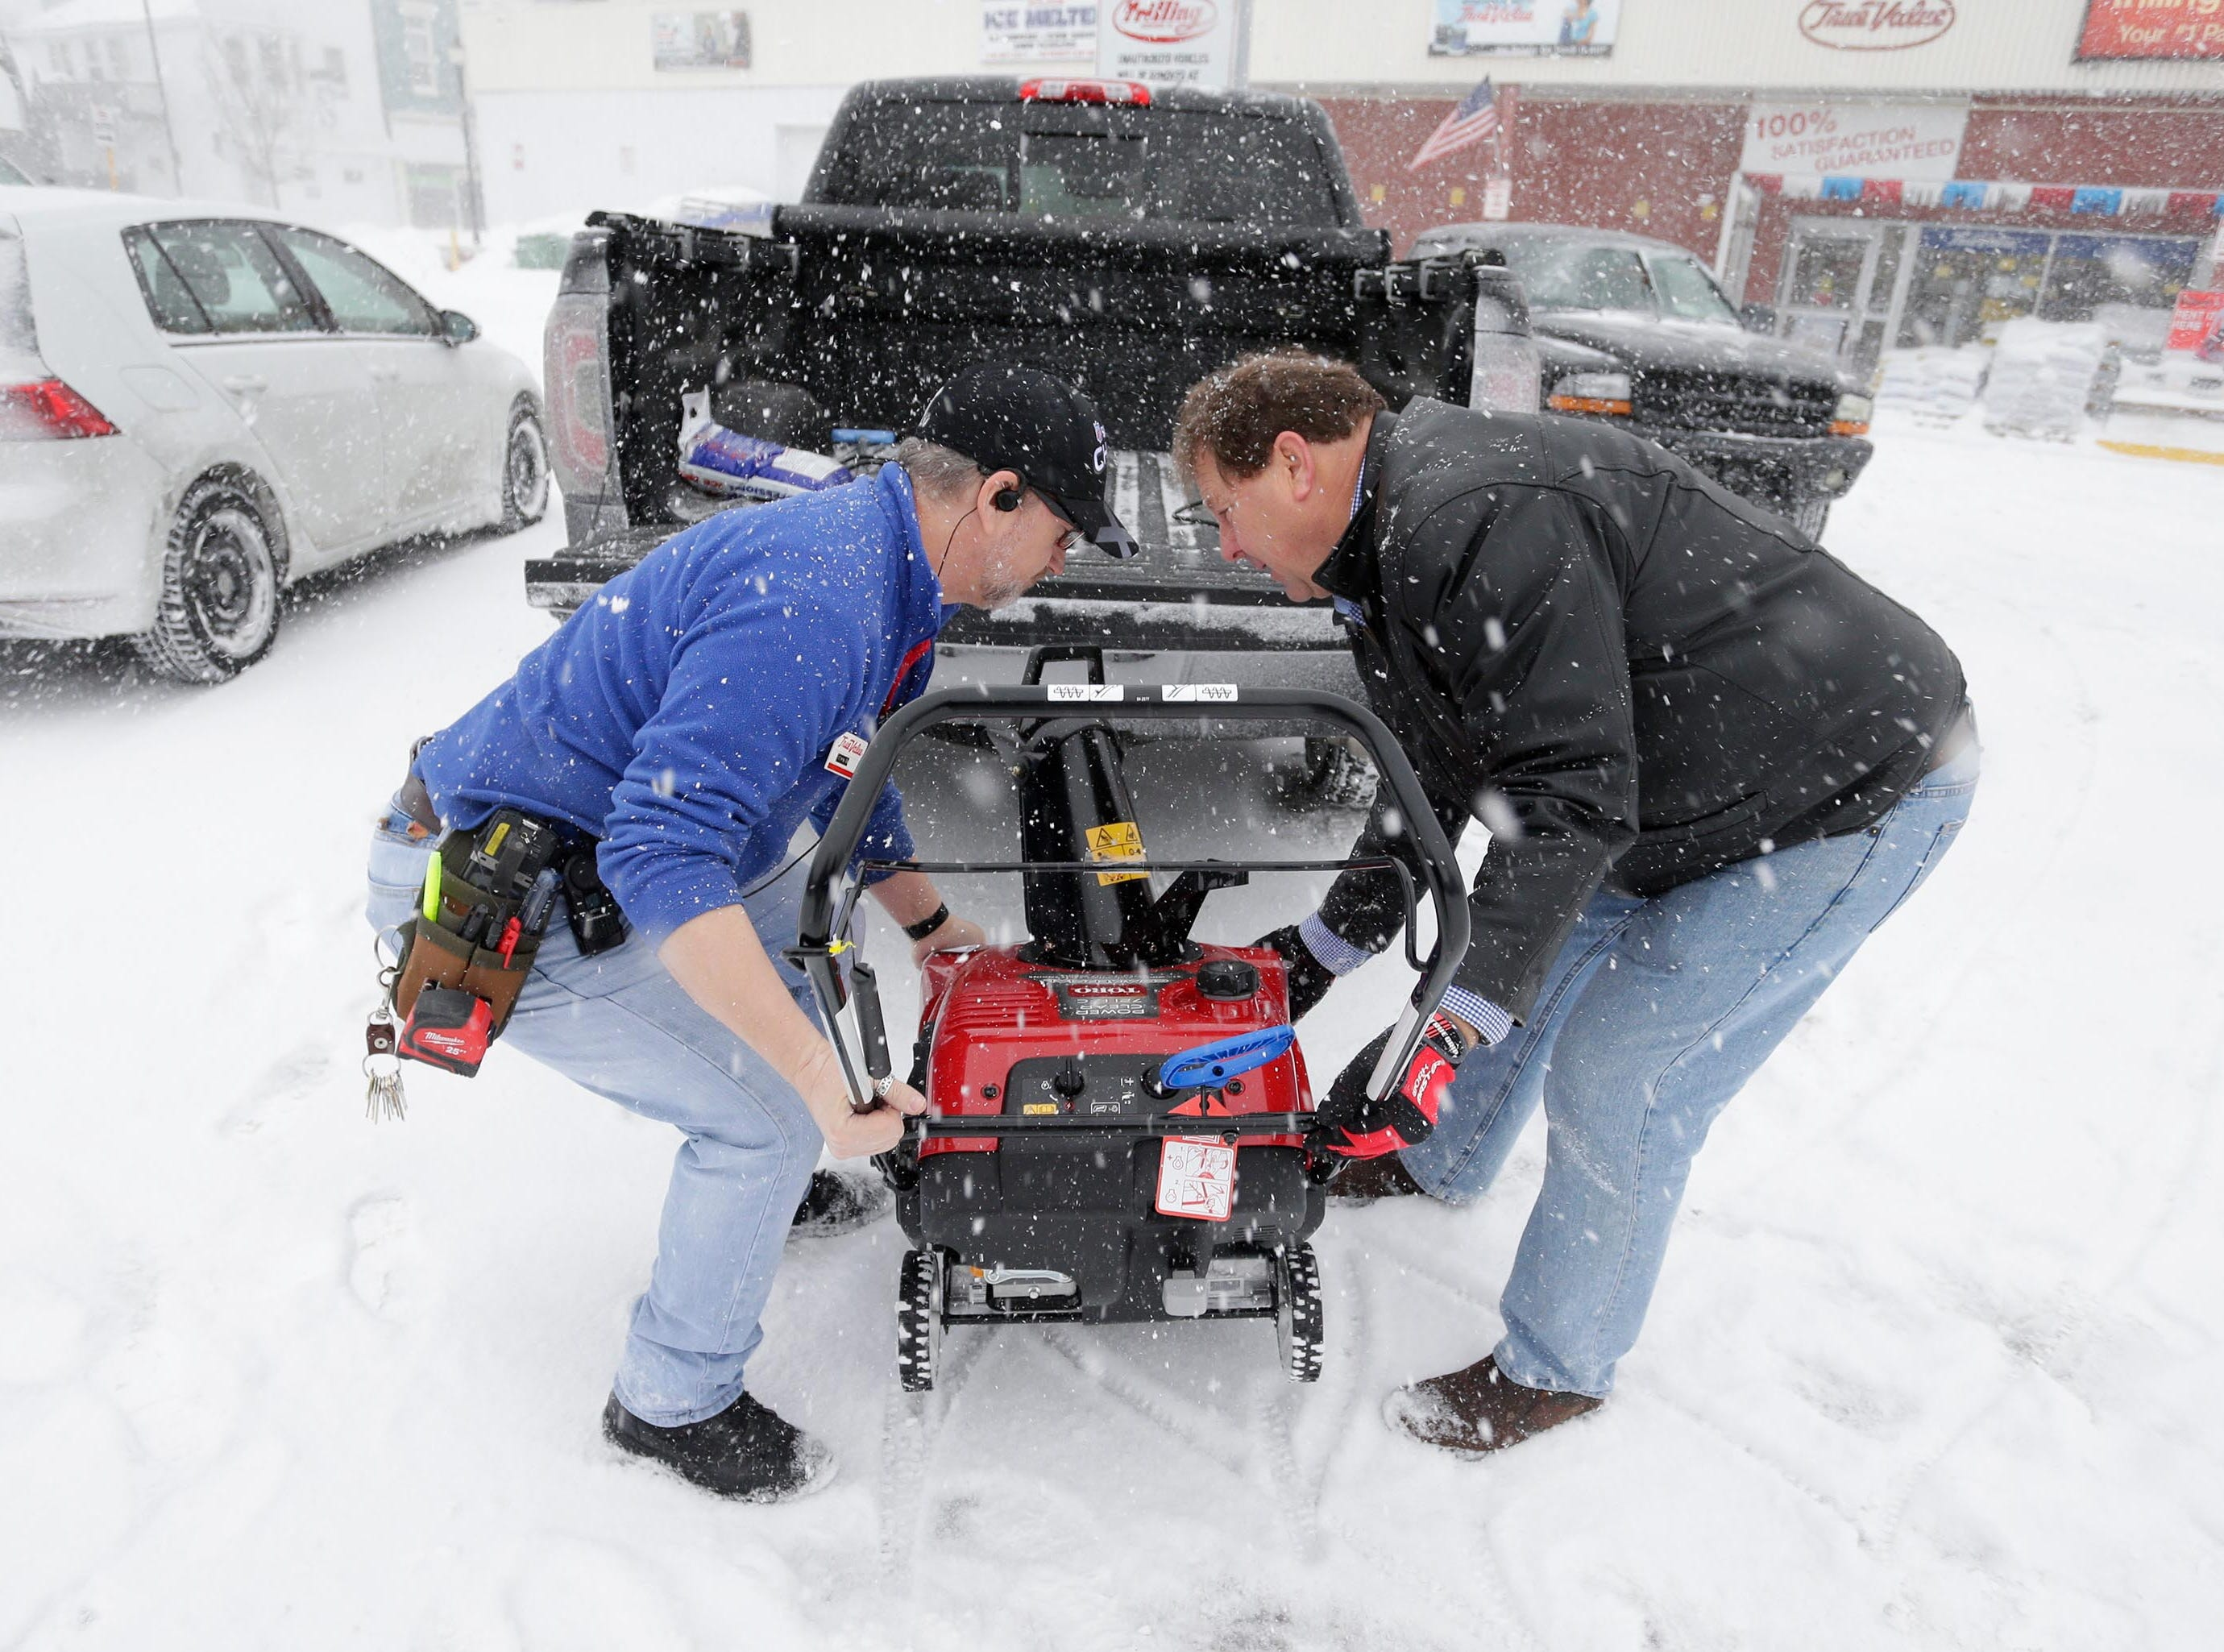 Trilling True Value's Chris Schramm, left, and Greg Parmly, lift a snowblower into a truck for delivery to a customer on Monday, Jan. 28, 2019, in Sheboygan, Wis. Parmly said that his firm sold 15 snowblowers last week due to anticipation from the storm.